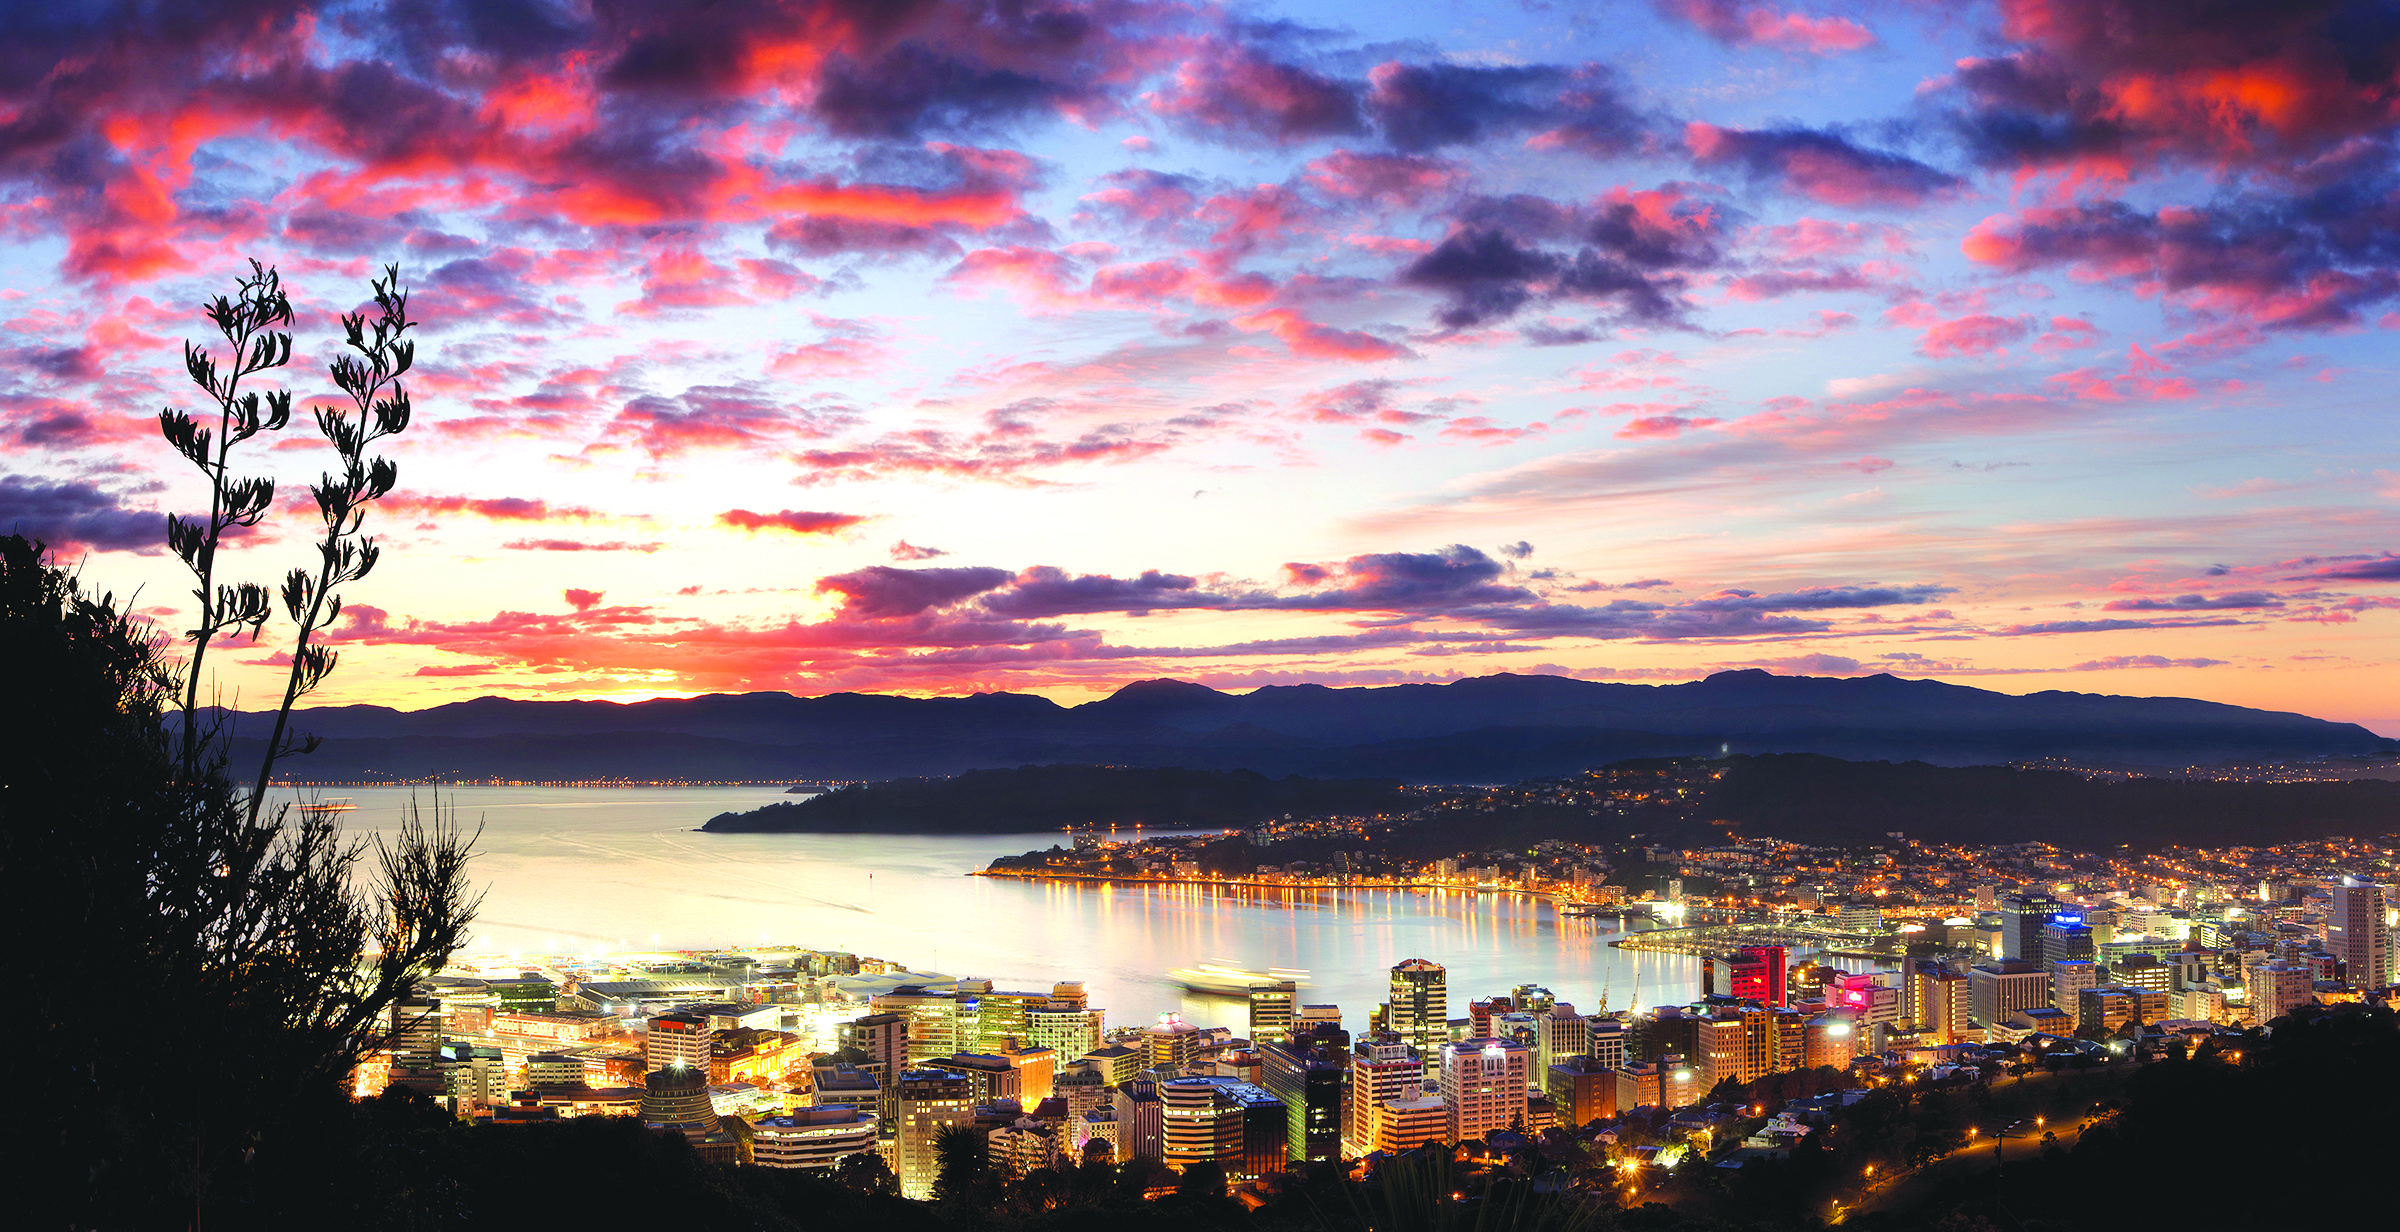 wellington-city-at-dawn-panorama.jpg